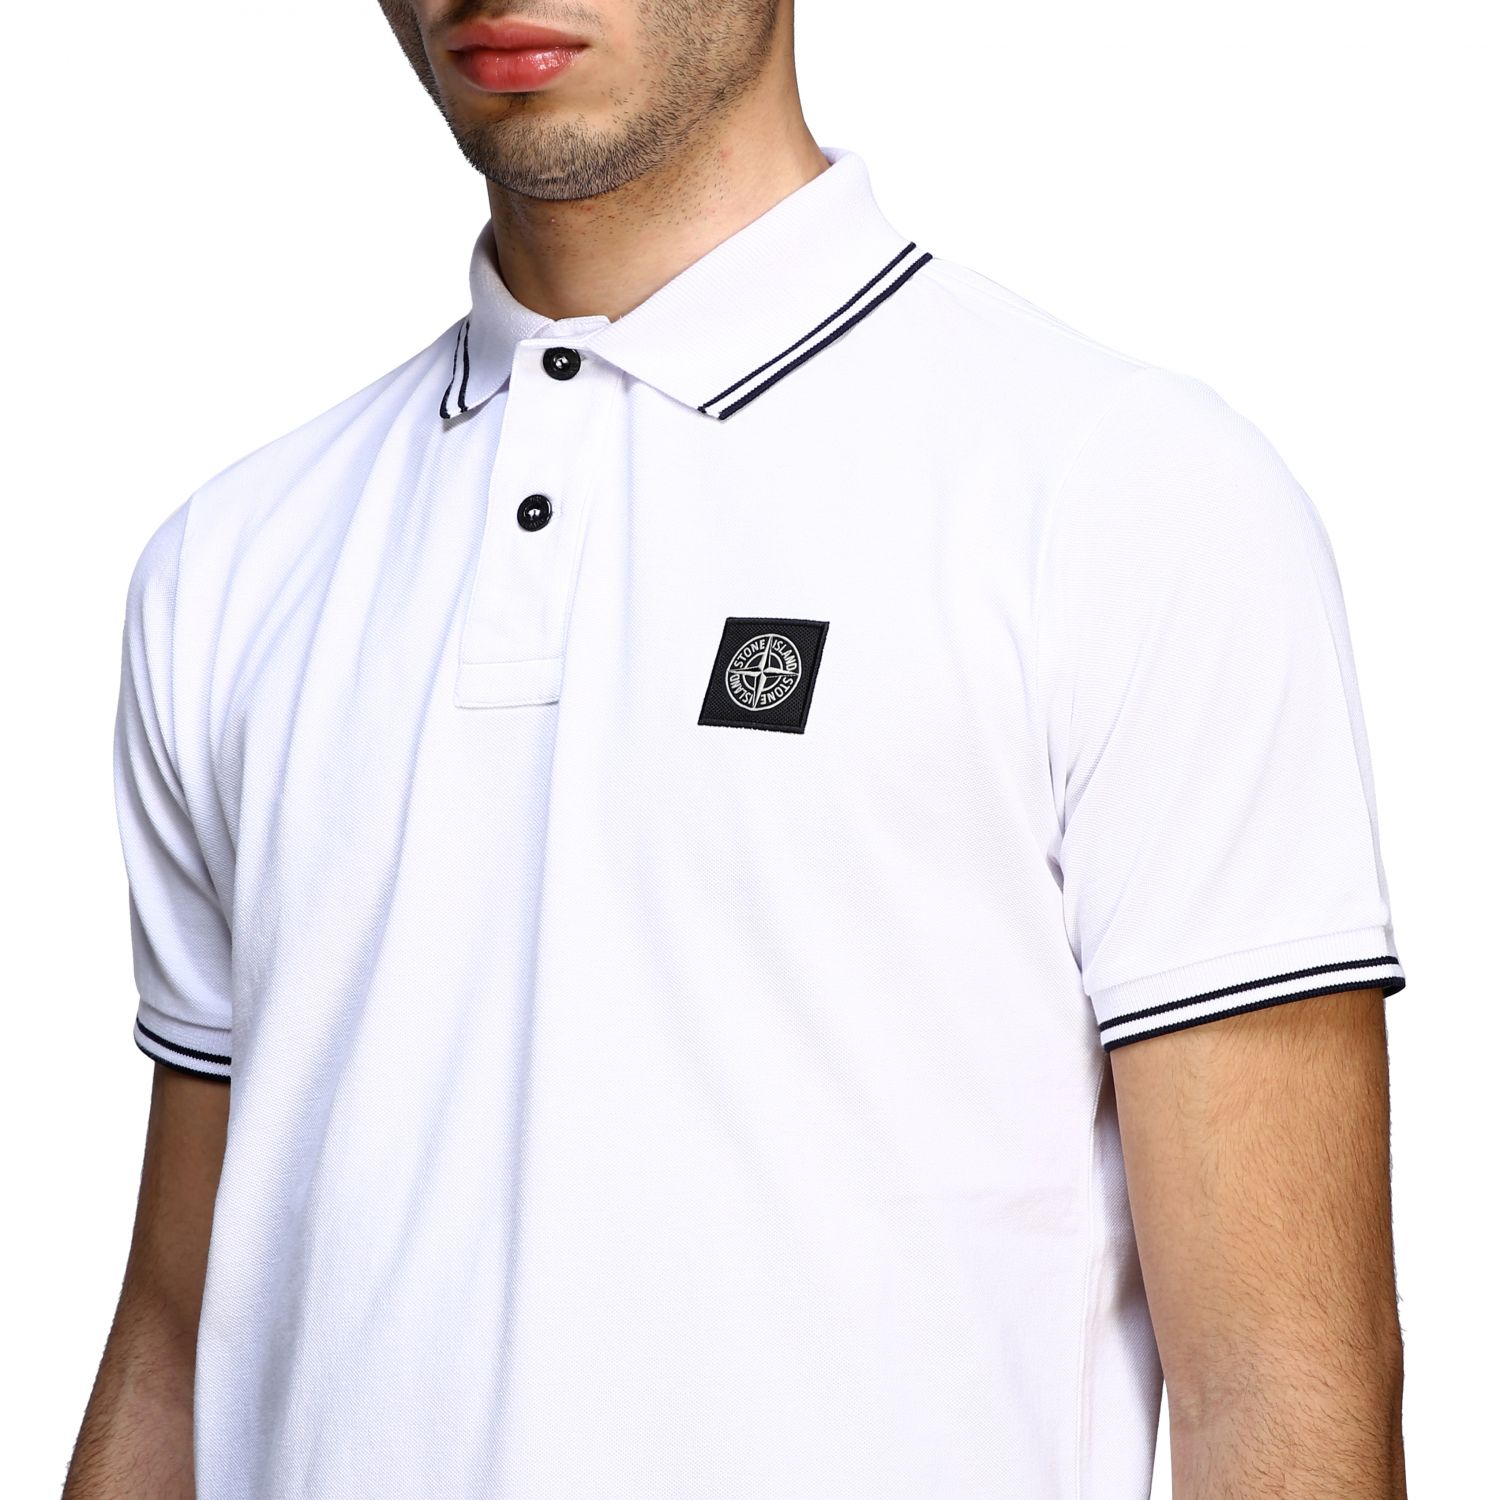 T-shirt men Stone Island white 5